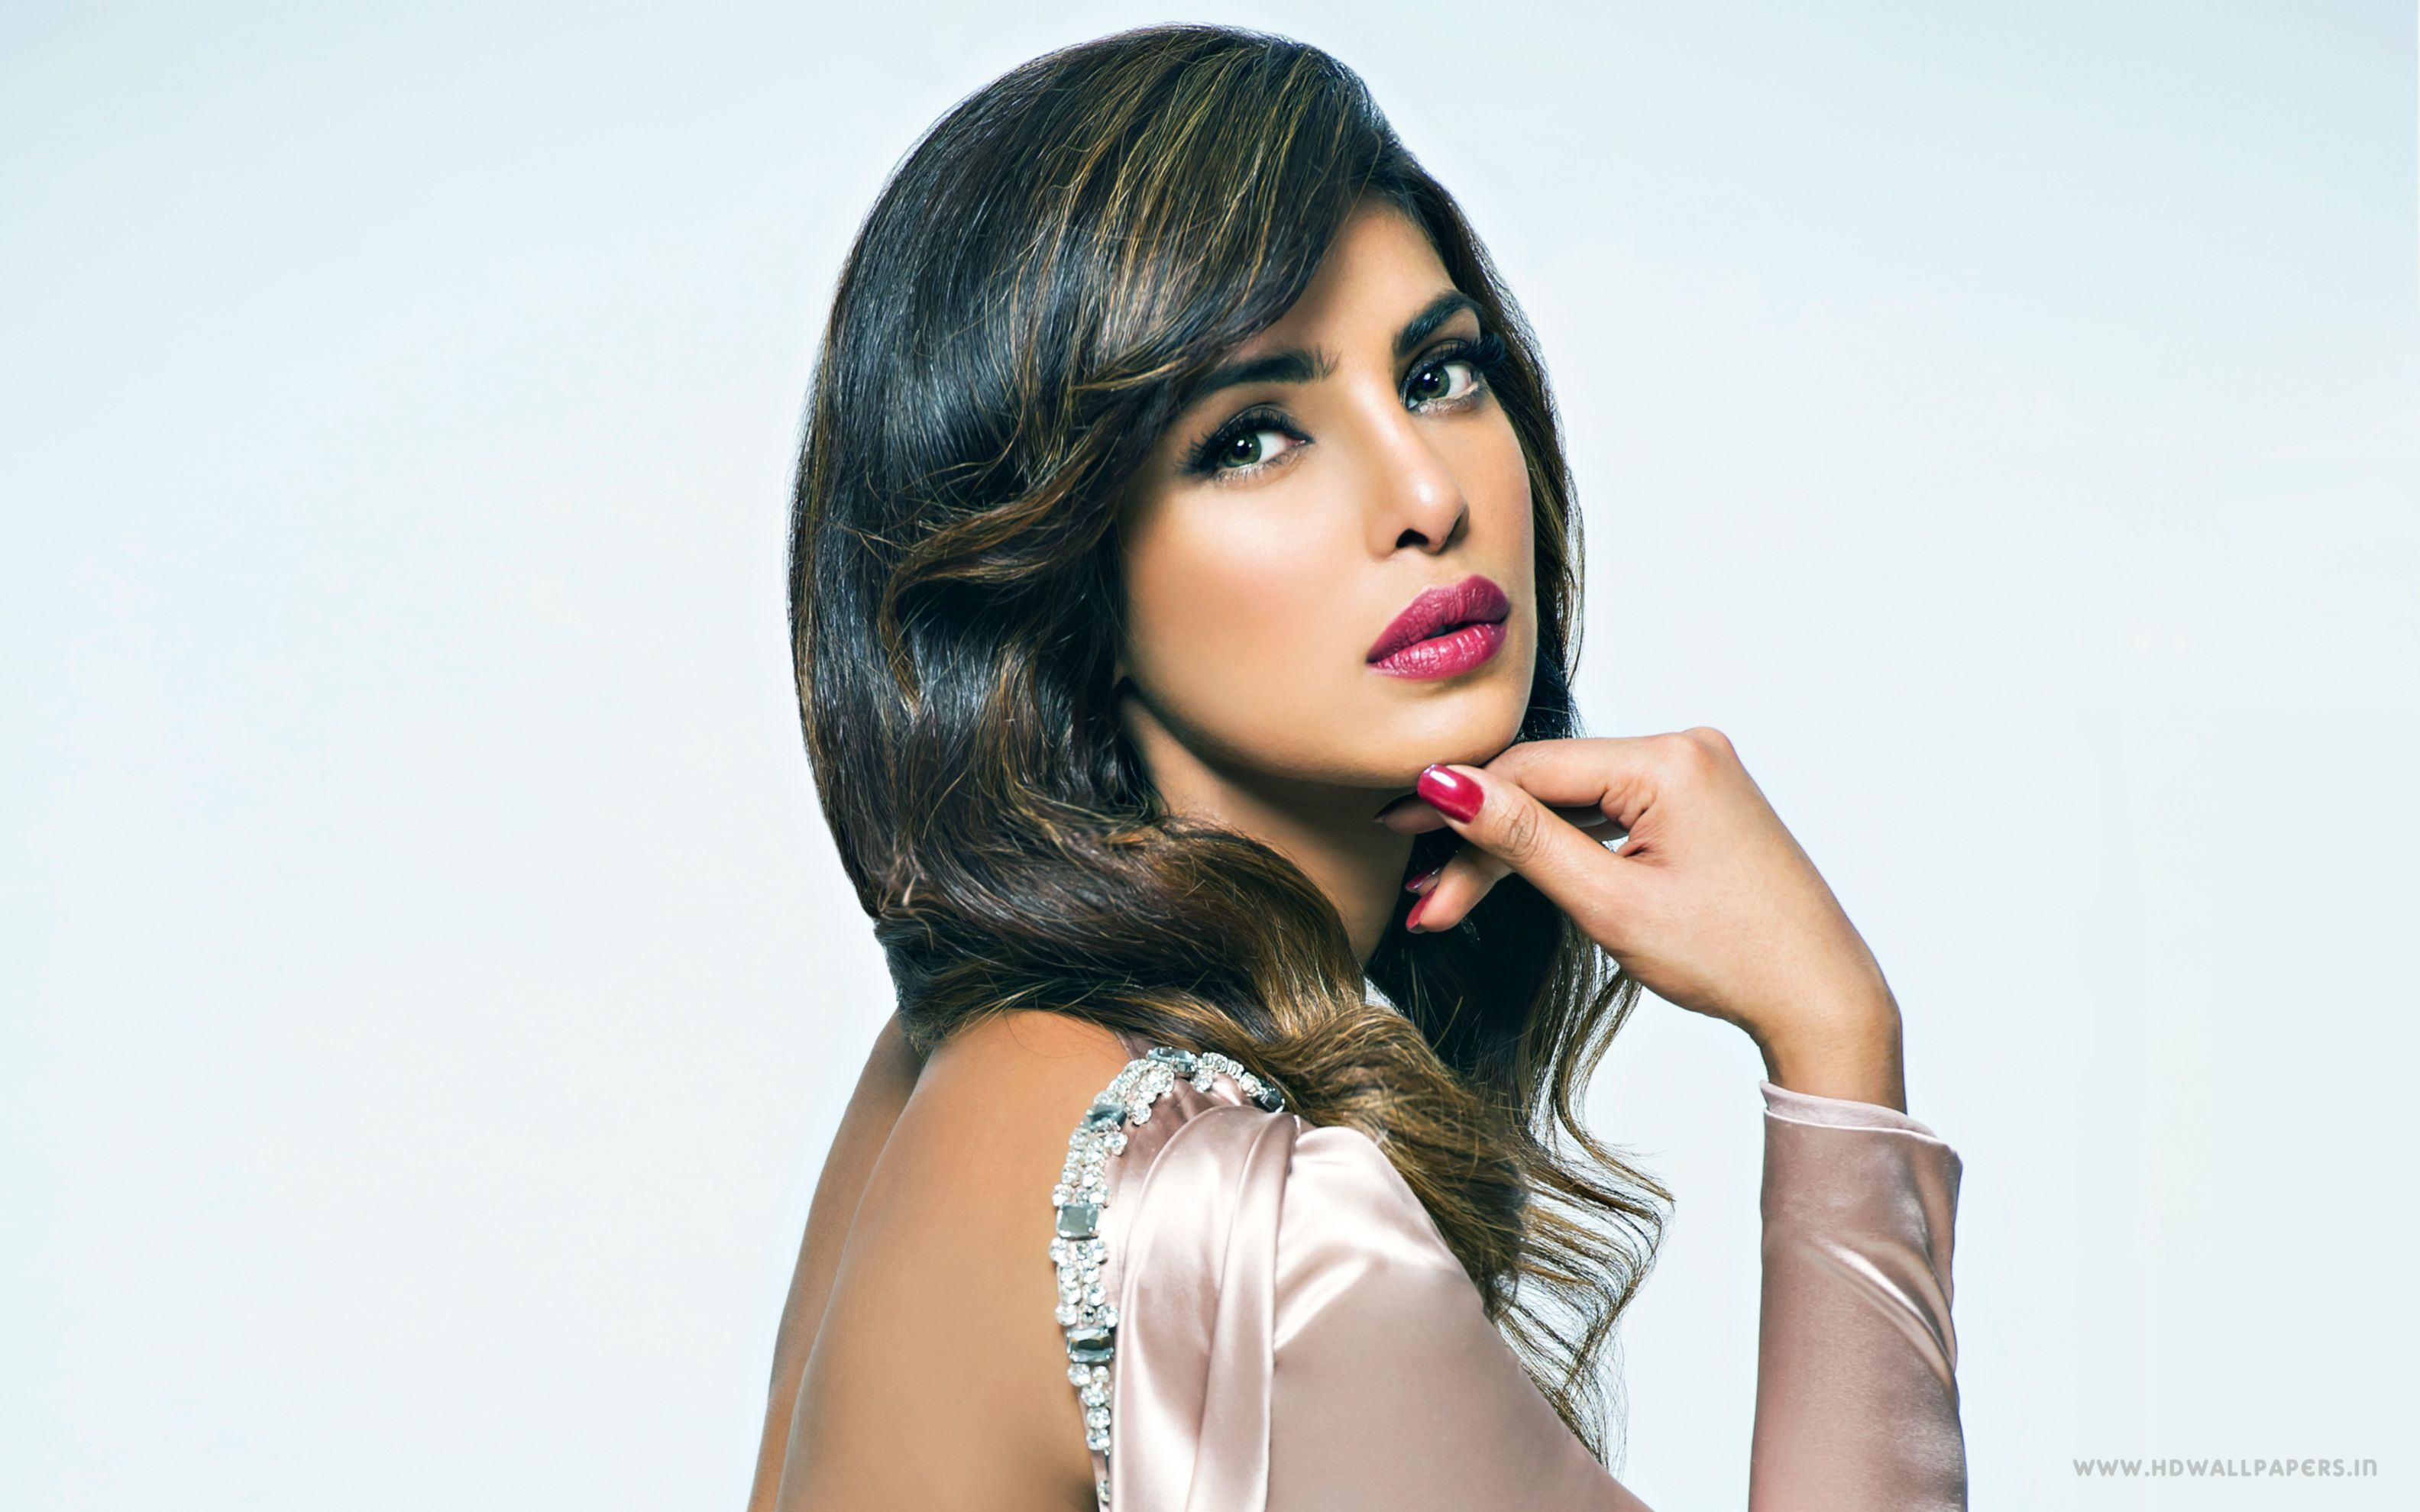 Download free HD Priyanka Chopra 23 Wide Wallpaper, image